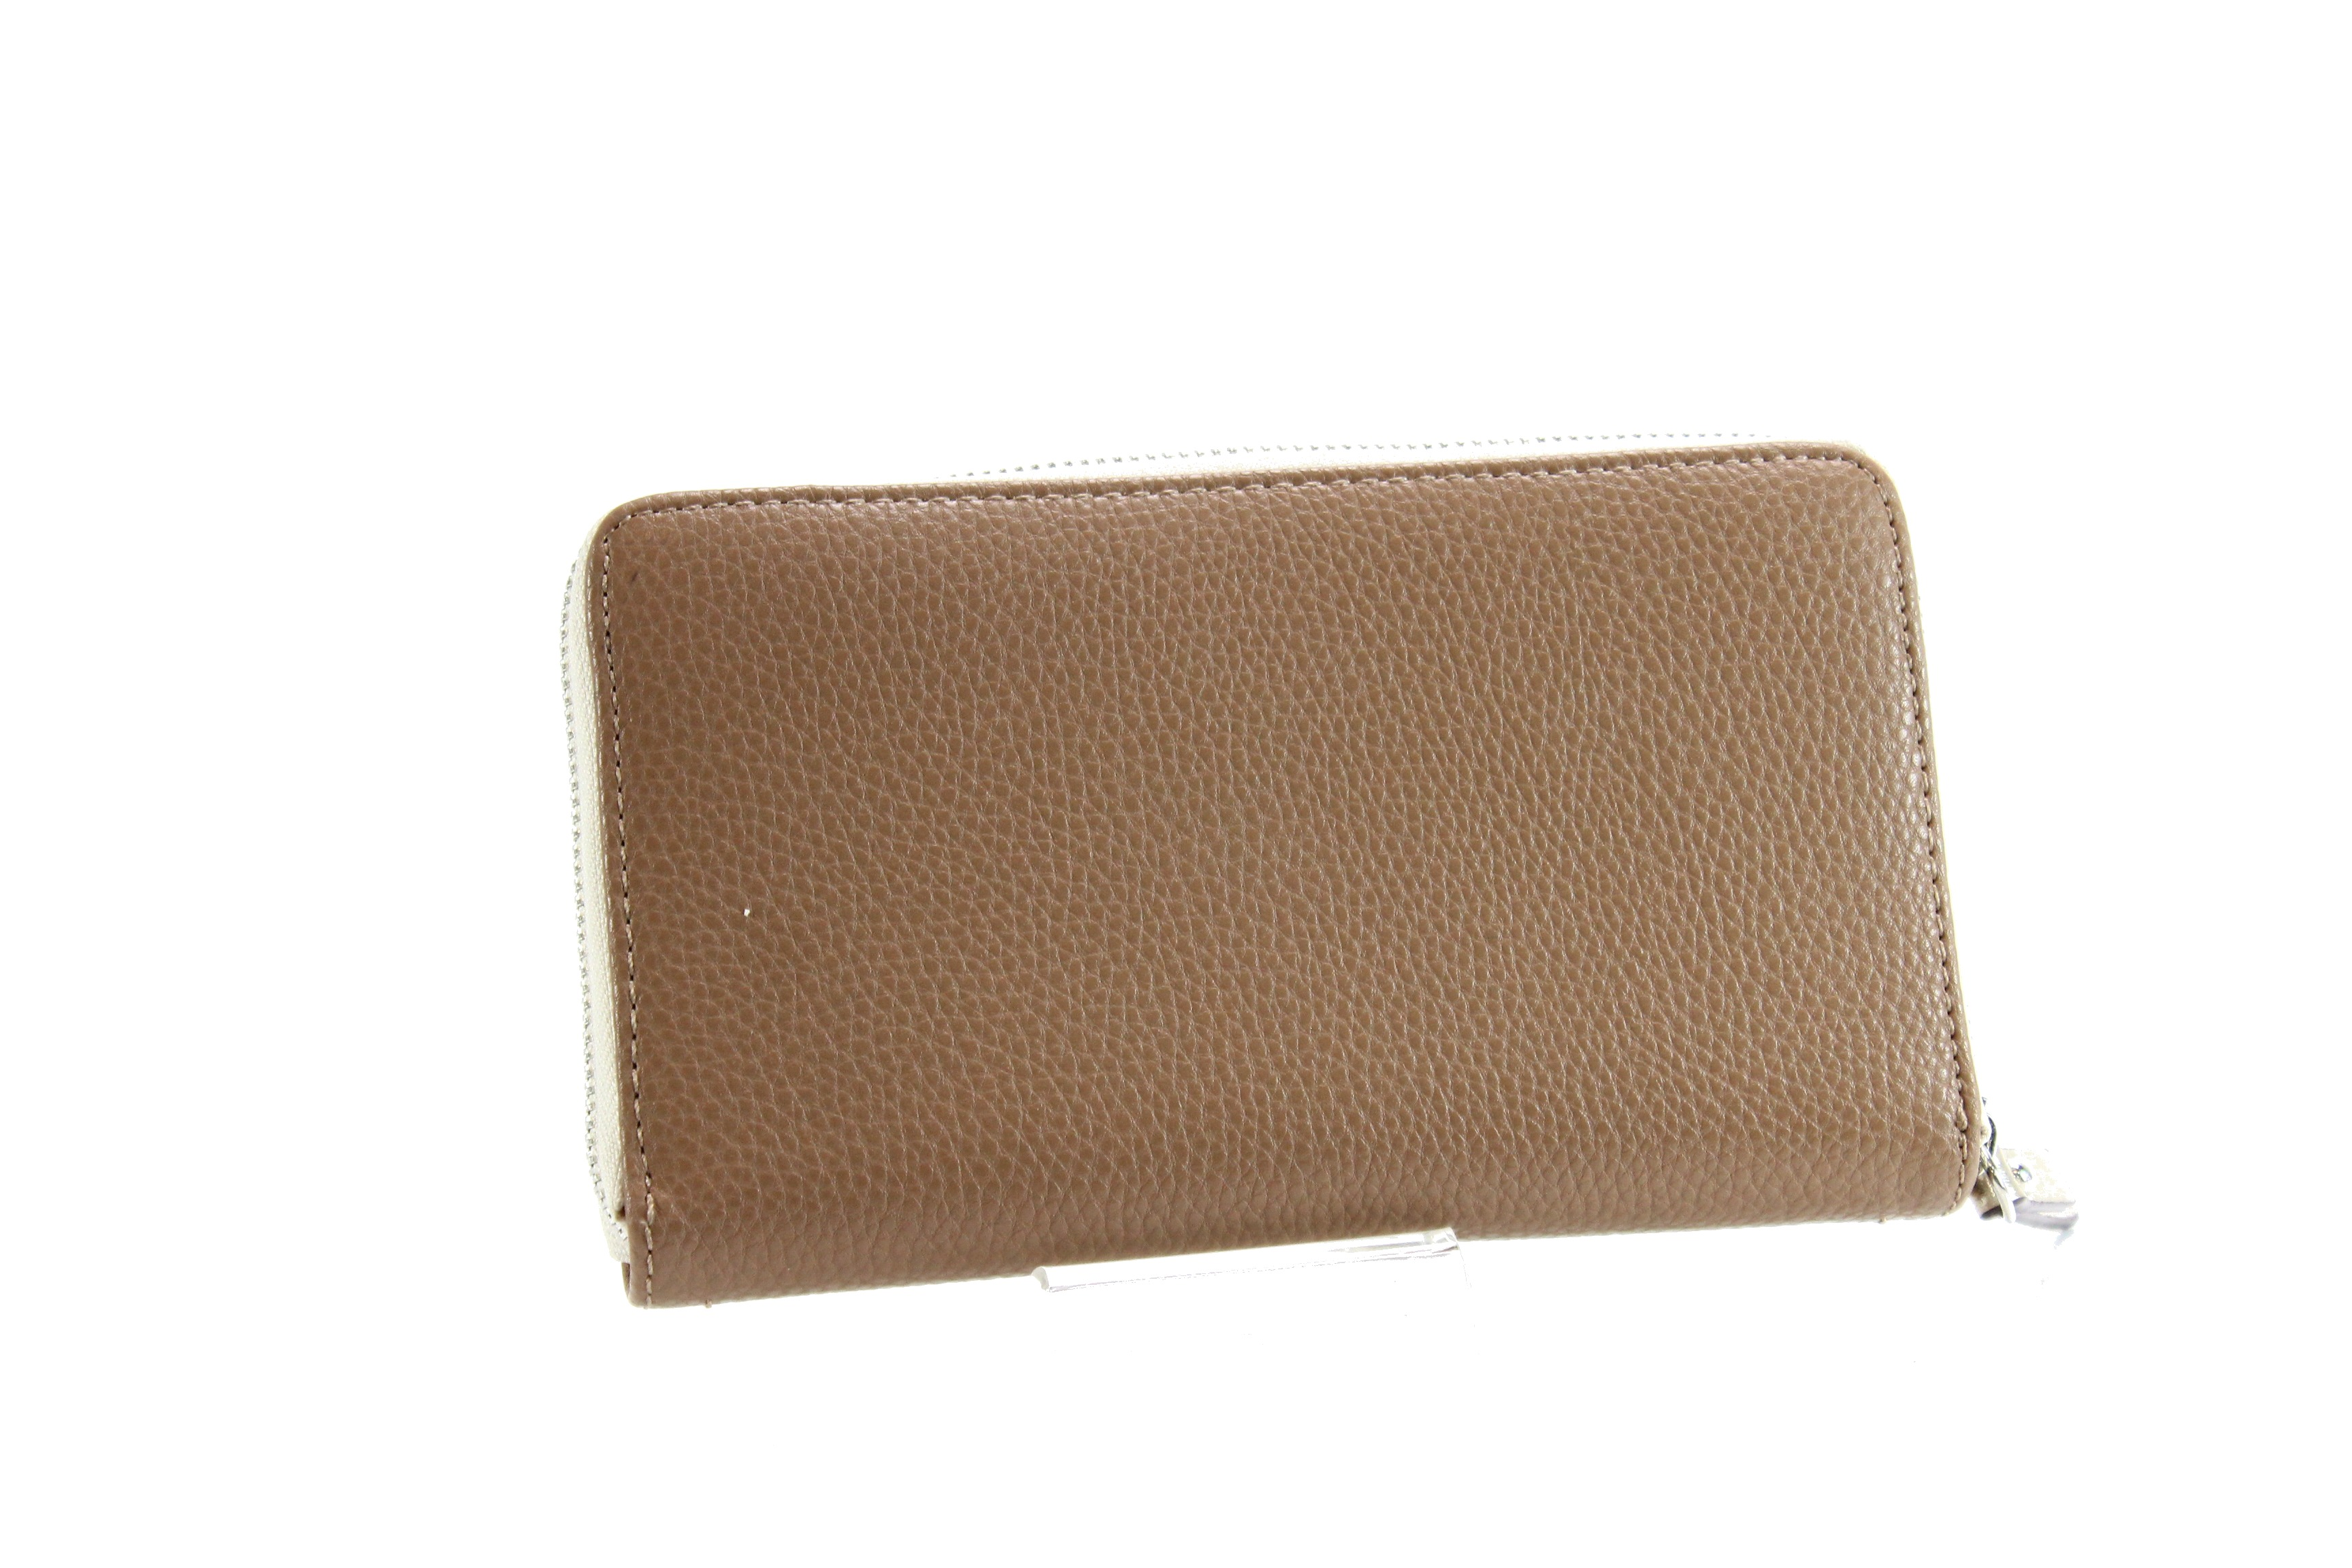 80fa872d83000 Nine West NEW Brown Silver Small Zip Around Clutch Leather Wallet ...